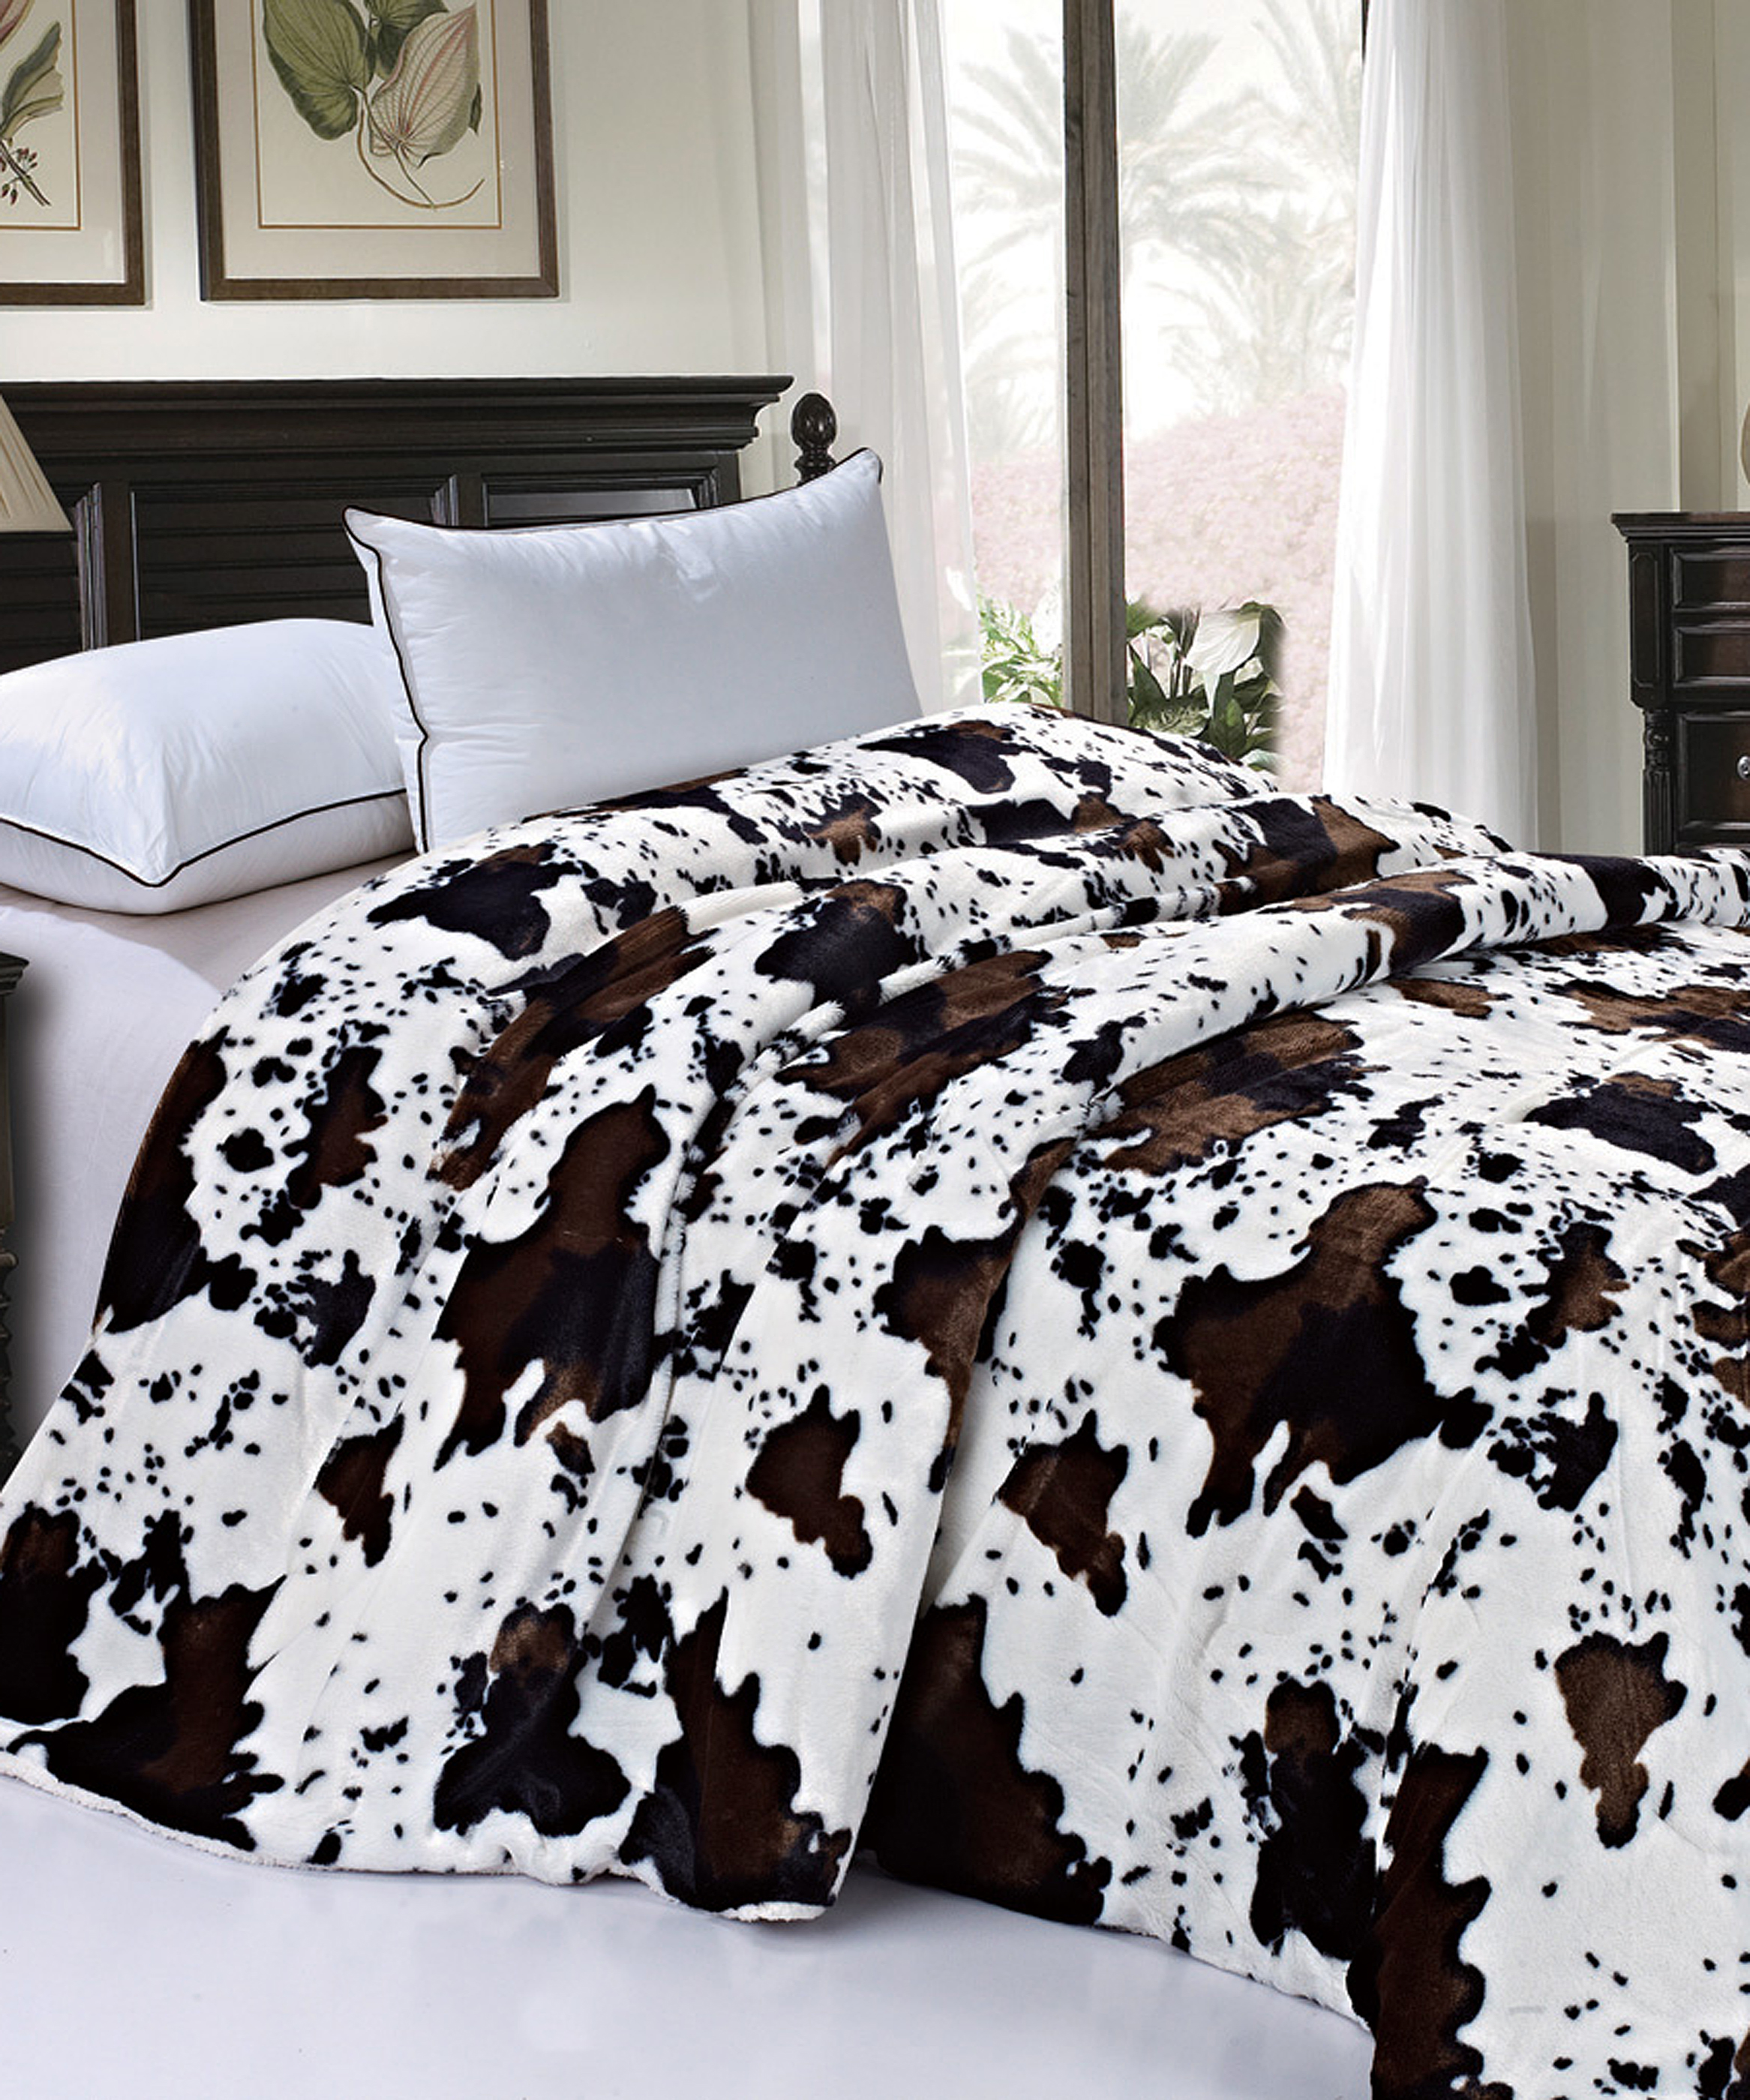 comforter tibet faux and fur with blue blanket fox throw bedspread comforters designs down bedroom colored ivory fringe